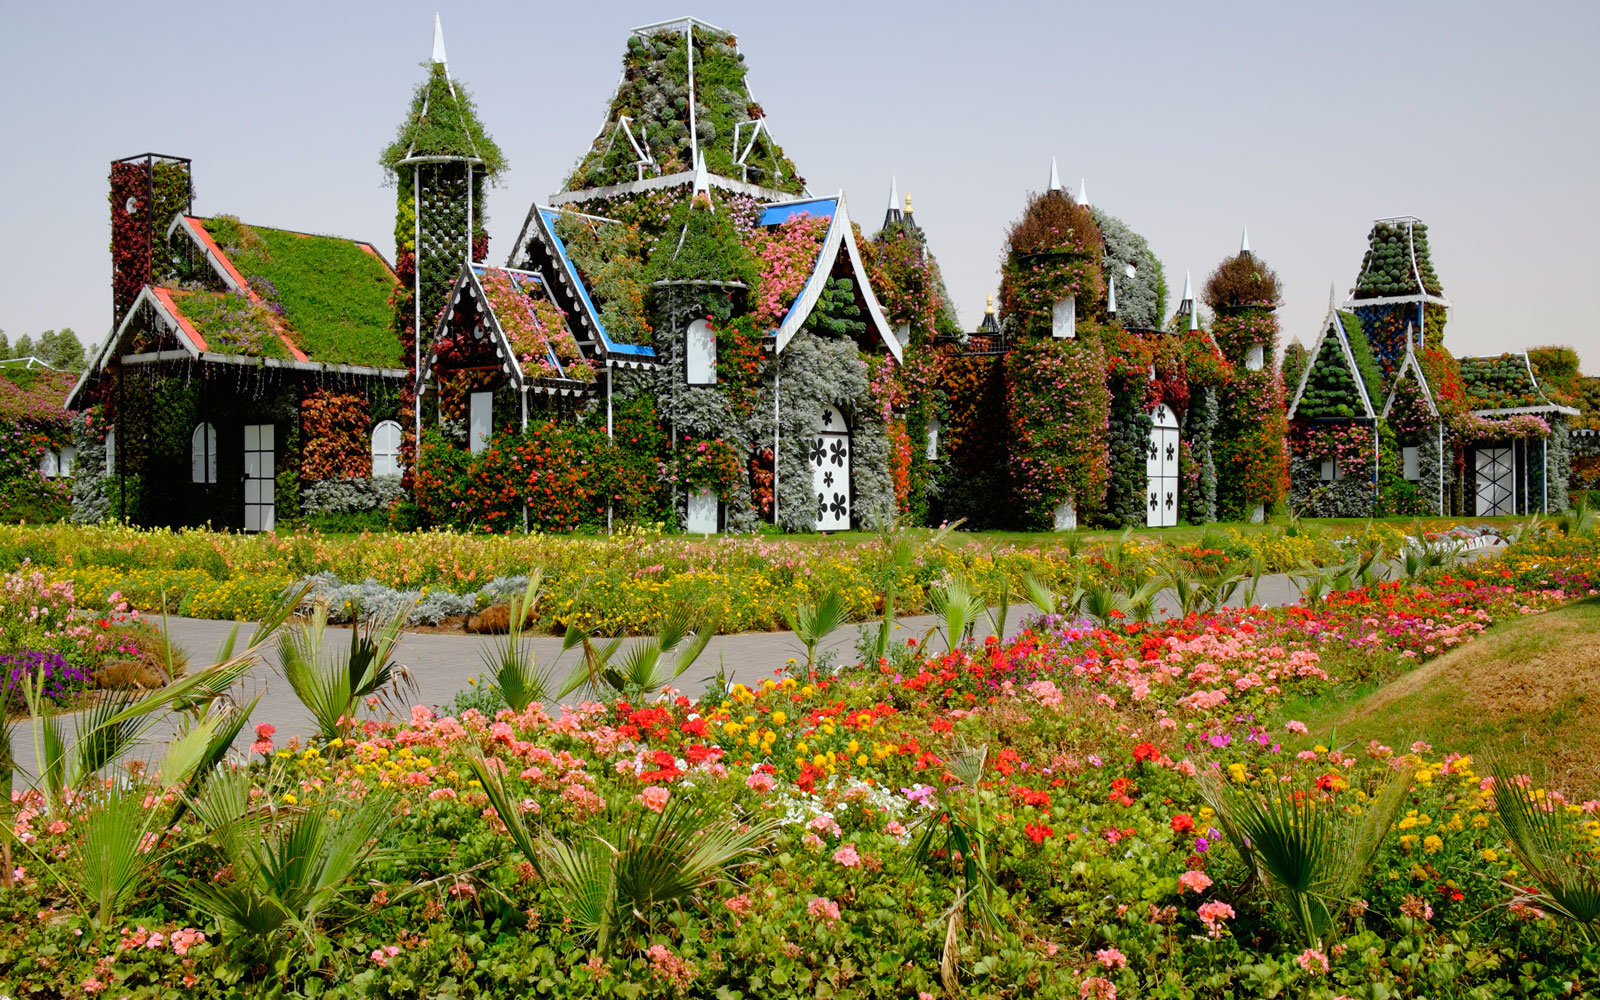 Row Flower Garden : The world s biggest flower garden sits in middle of a